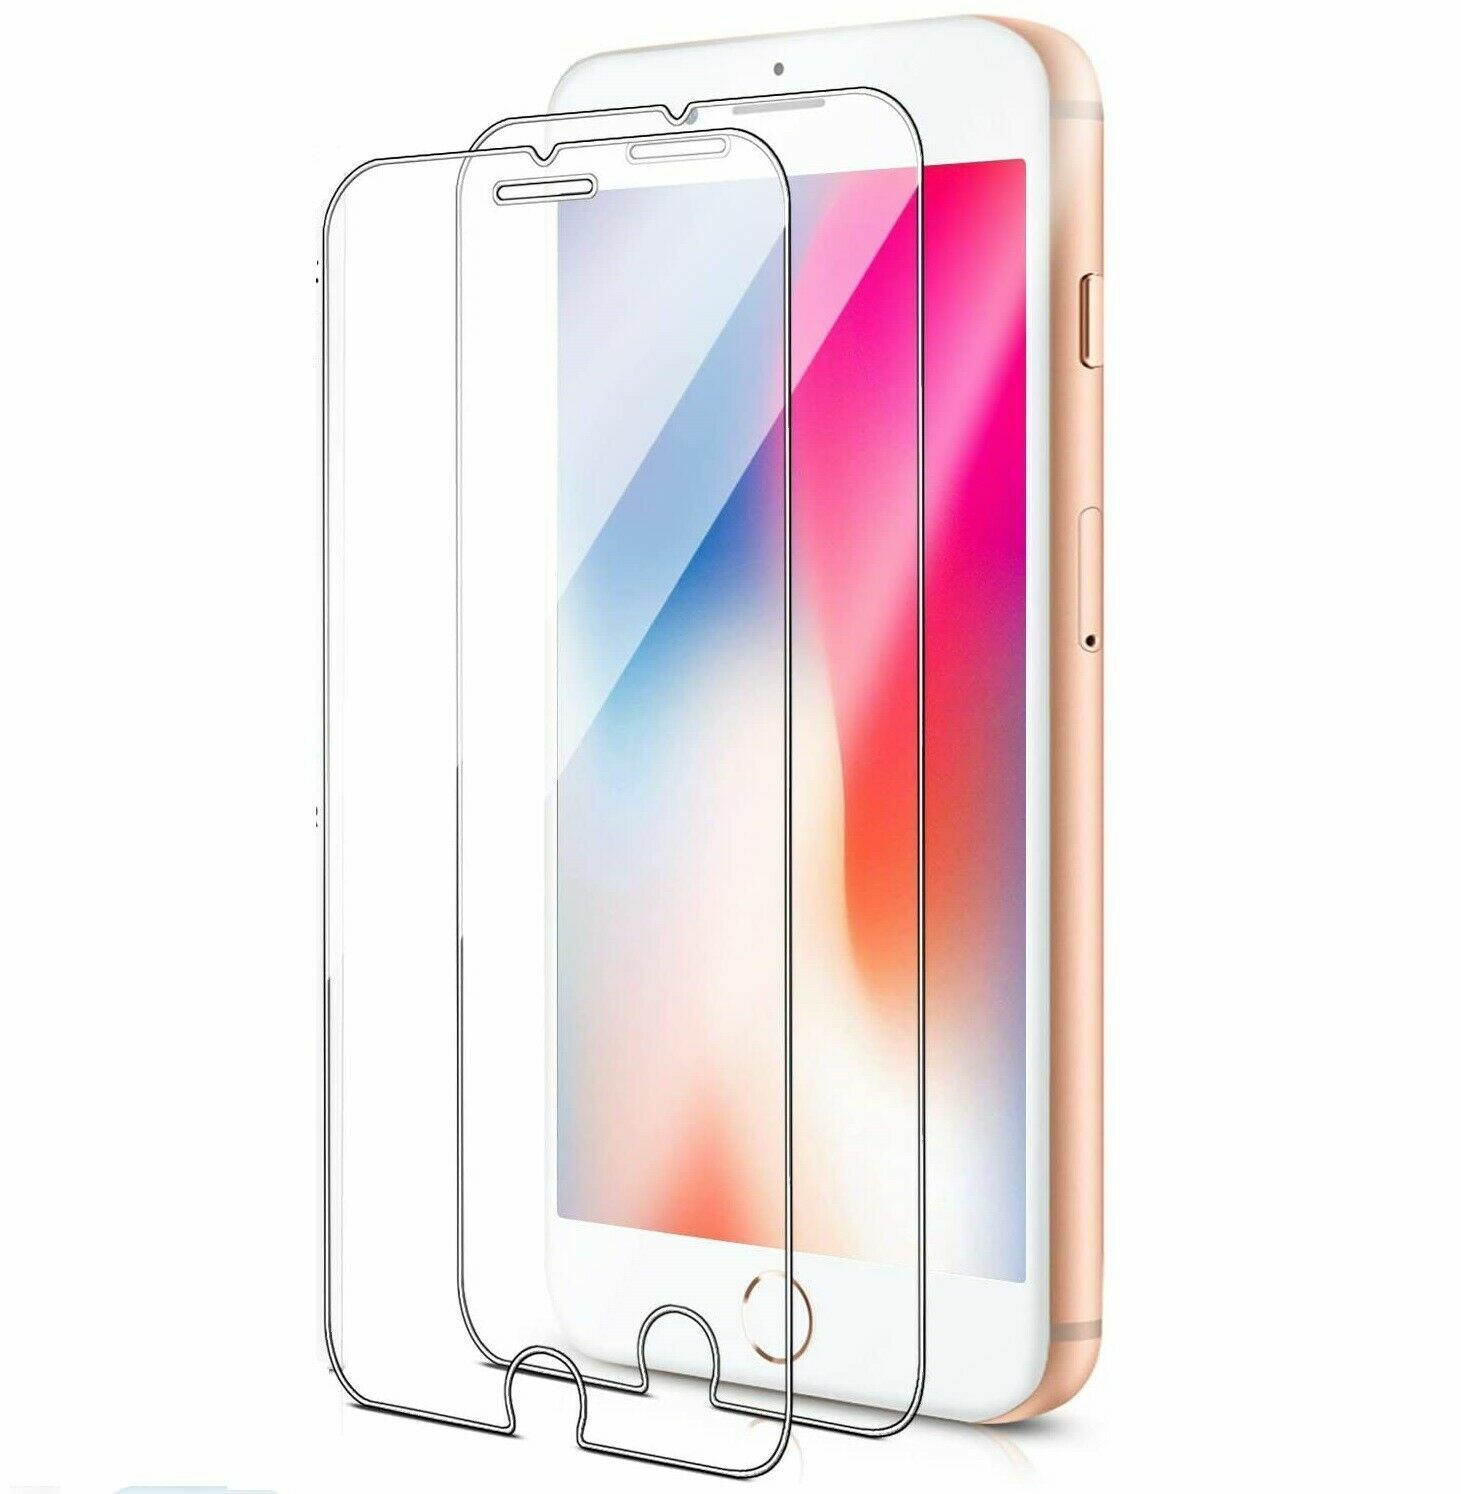 Pack of 2 Tempered Glass Screen Protector for iPhone 8, 7, 6S, 6 4.7-Inch film Cell Phone Accessories